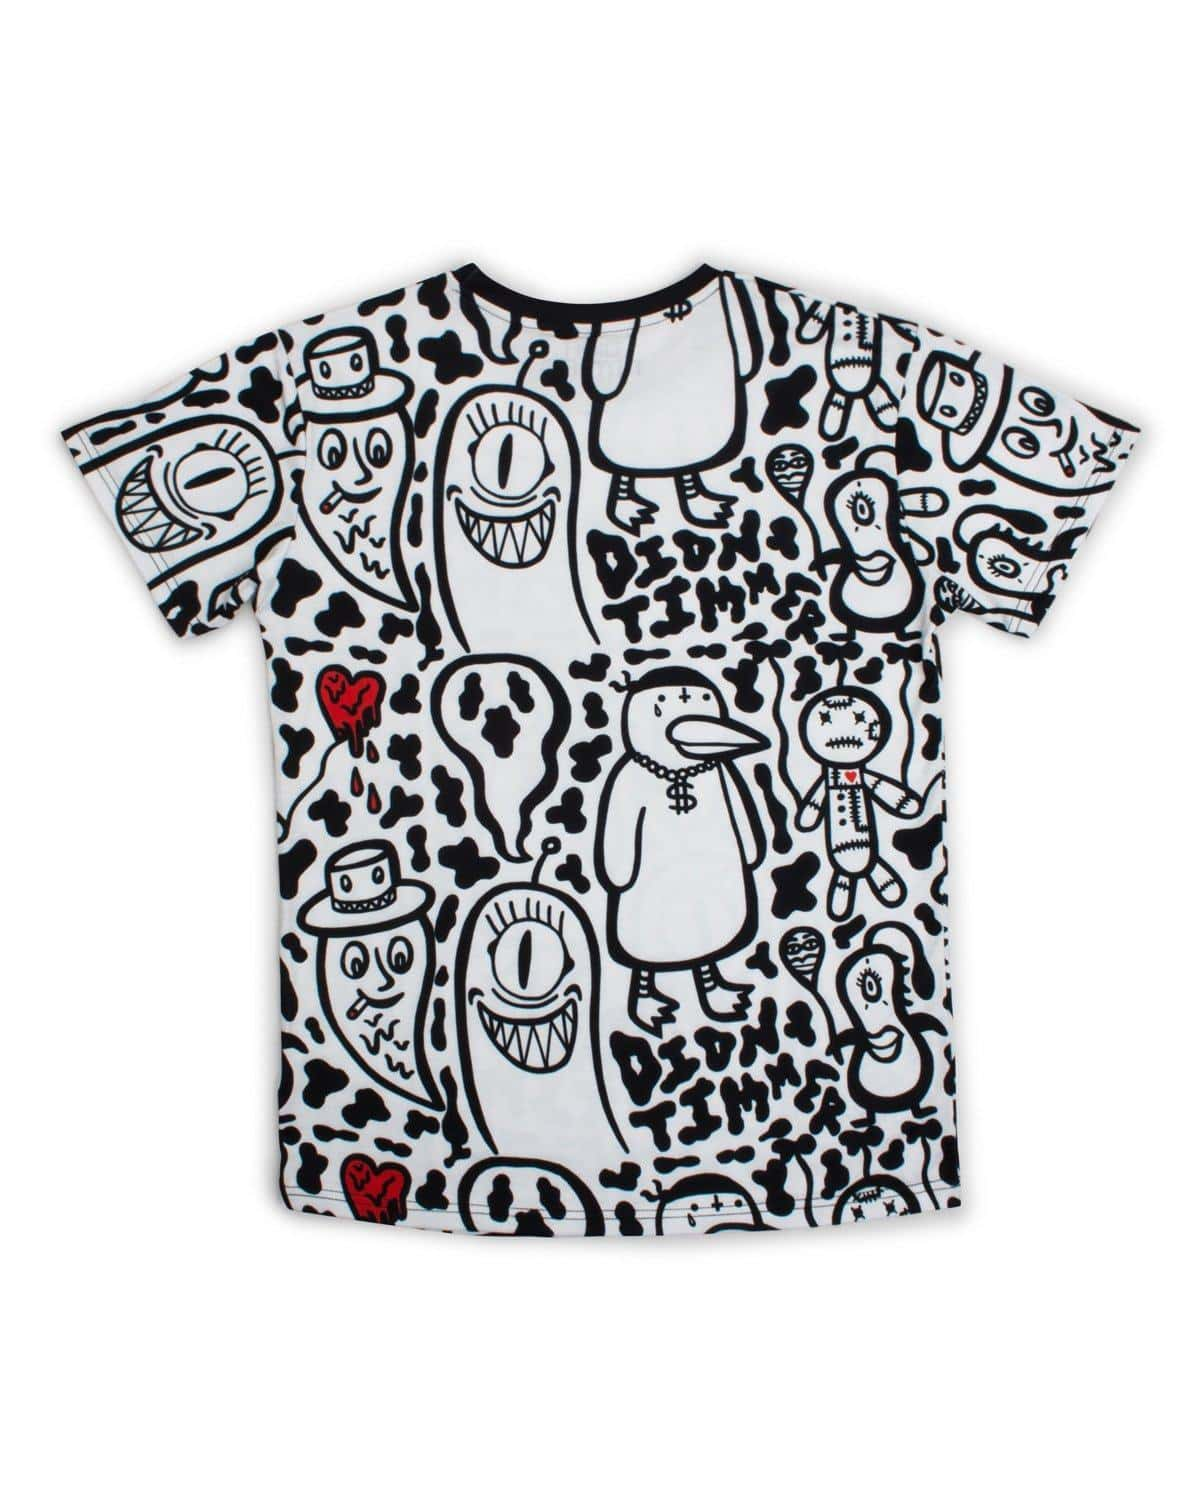 'Squiggles' Unisex T-Shirt